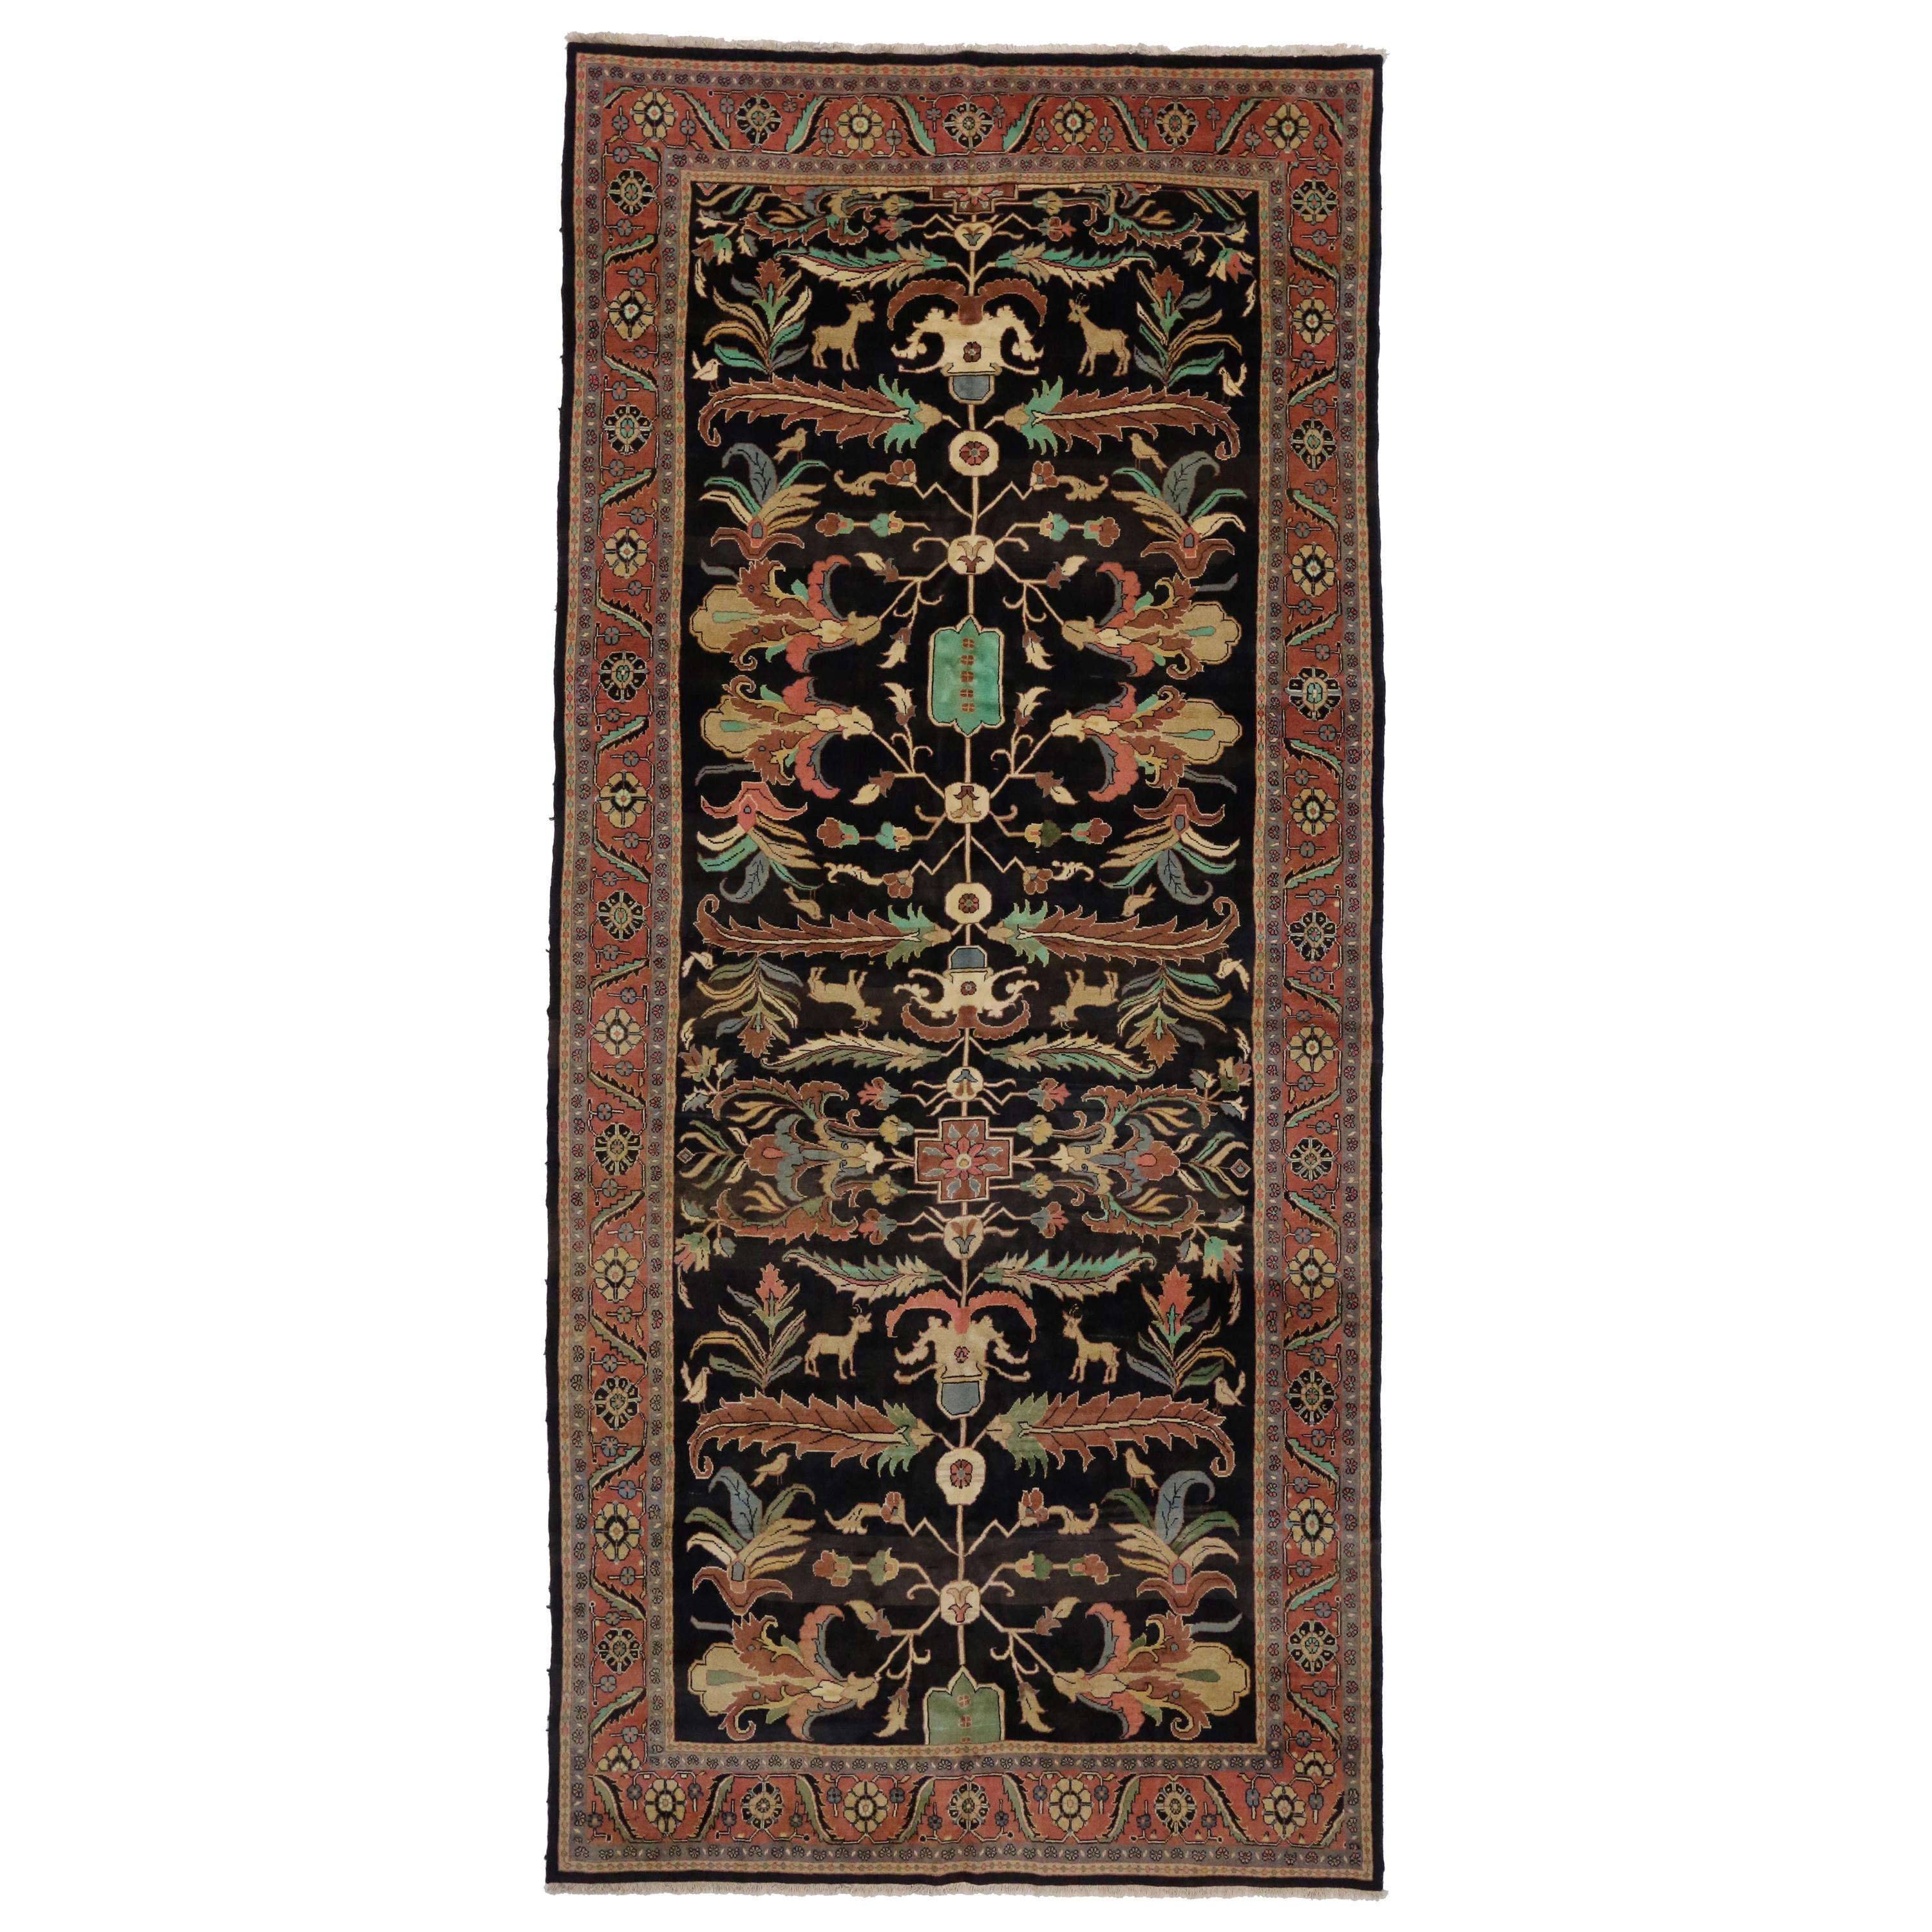 Vintage Persian Mahal William Morris Inspired Rug with Arts & Crafts Style